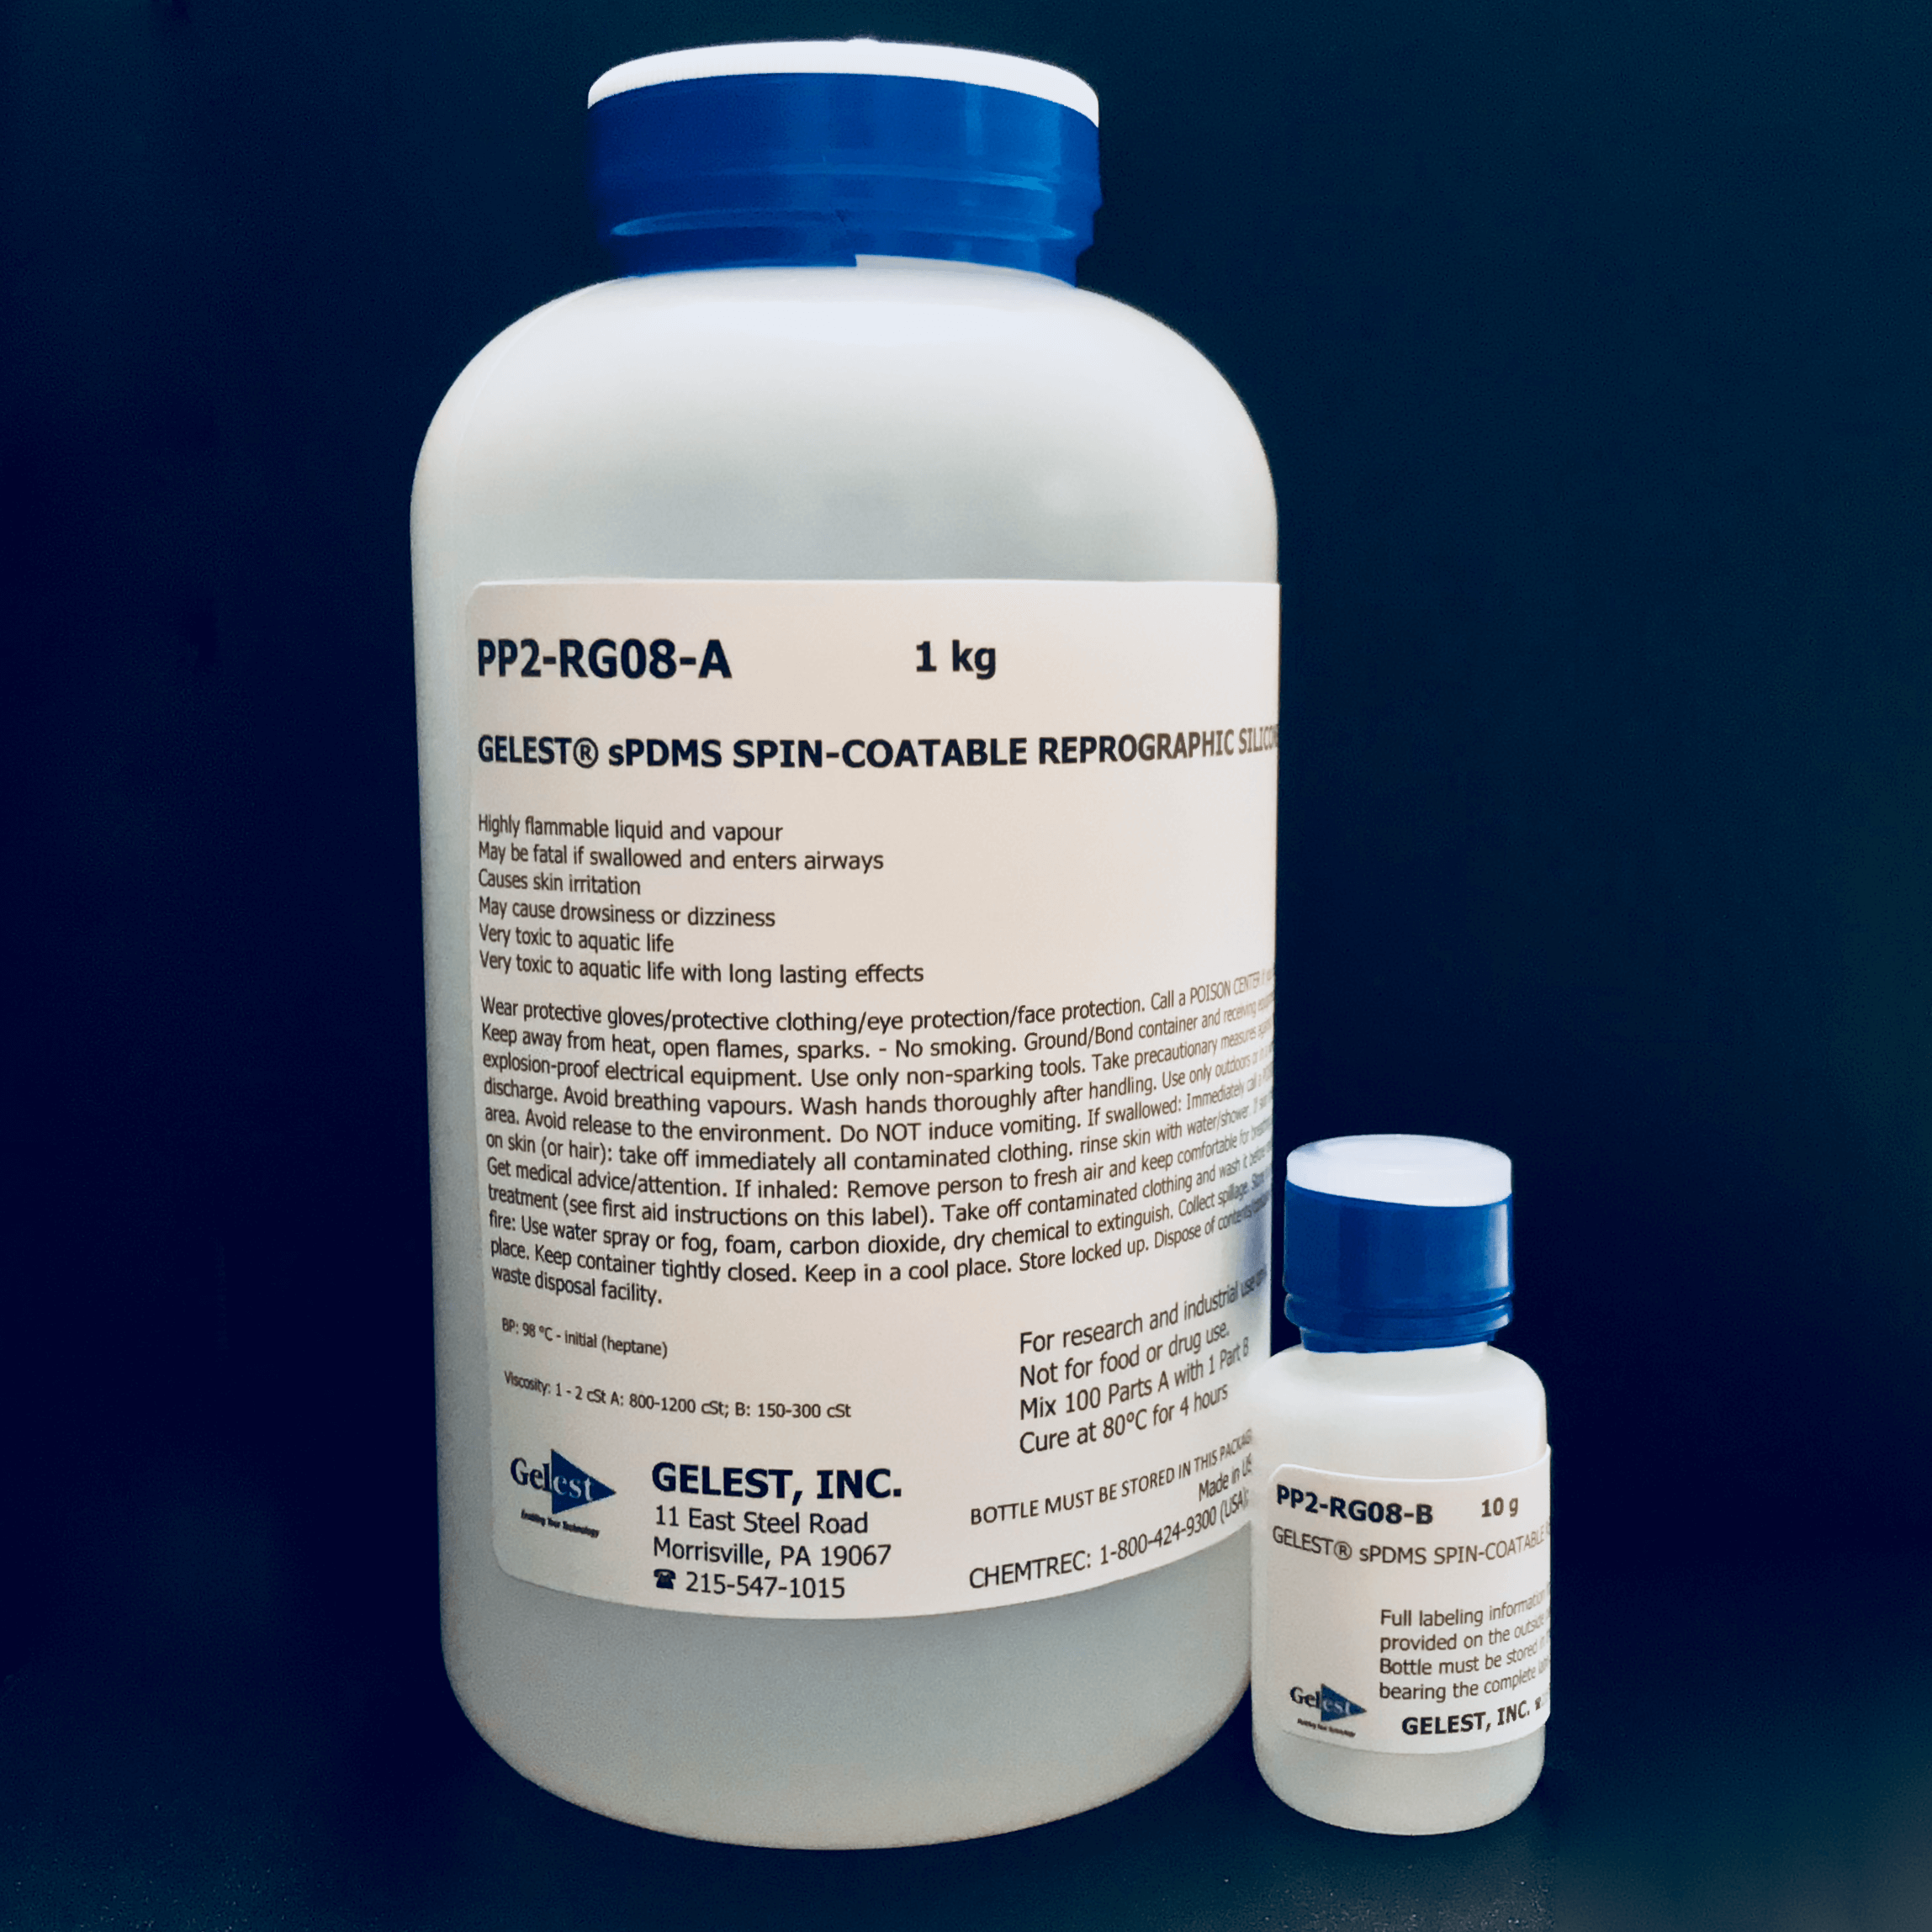 GELEST® sPDMS: SPIN-COATABLE REPROGRAPHIC SILICONE 1.01kg Kit